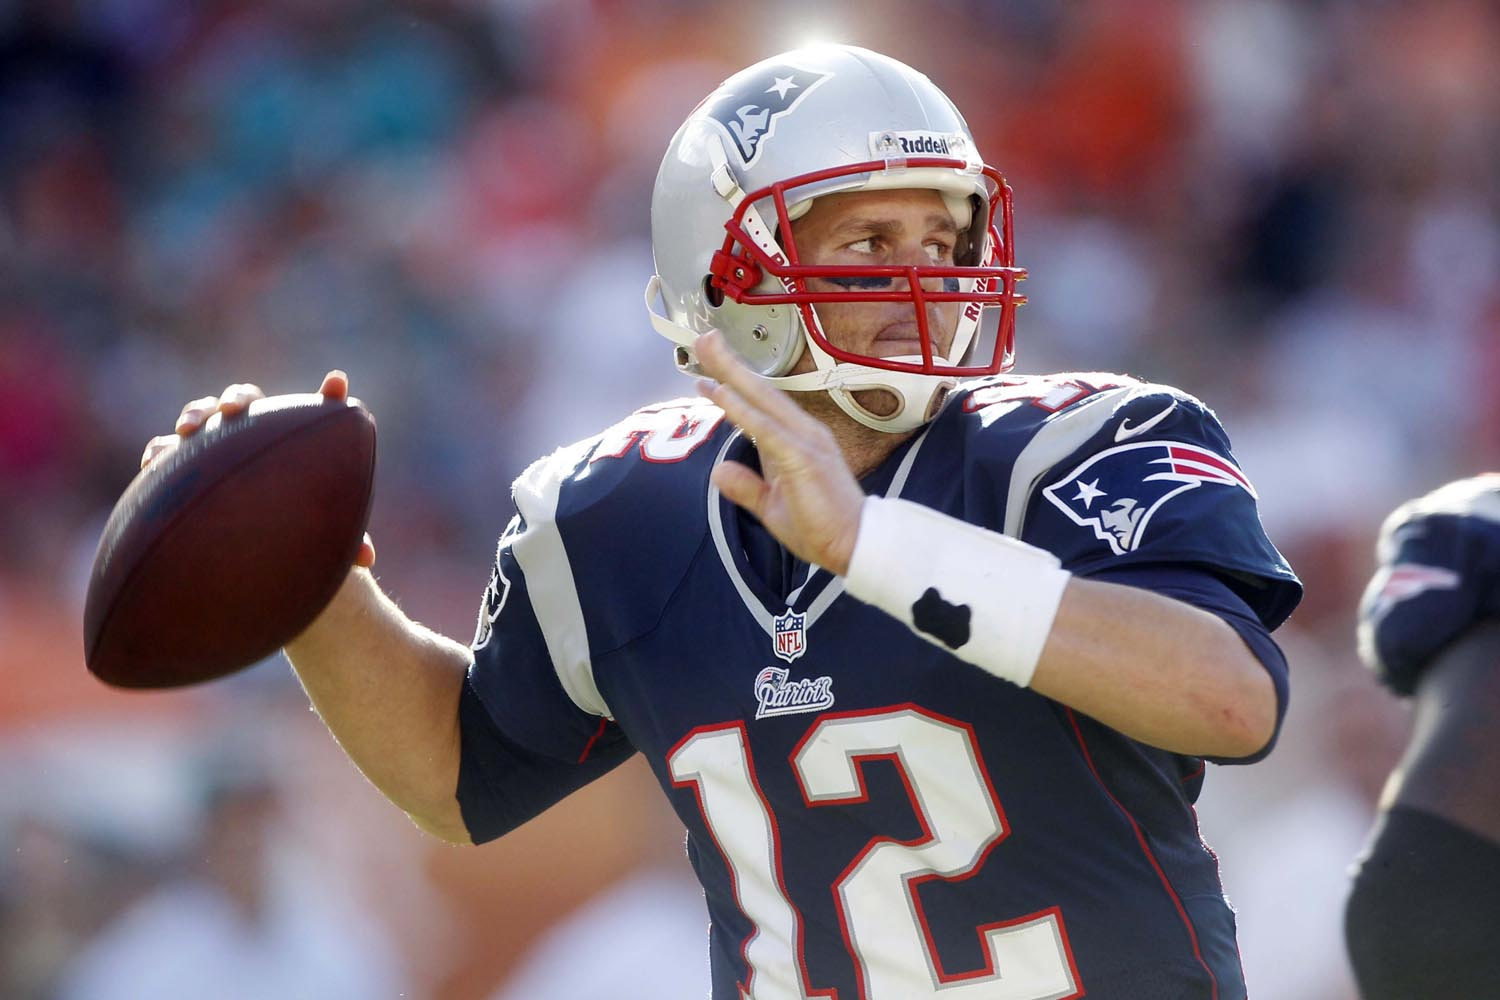 2000 NFL Draft, sixth round, New England Patriots -- Brady has played 13 seasons for the Patriots (2000-2012. He has led the Patriots to five Super Bowls, winning three and claiming game MVP honors in two of those Super Bowl wins. Brady is an eight-time Pro Bowl selection. (AP Photo/John Bazemore)